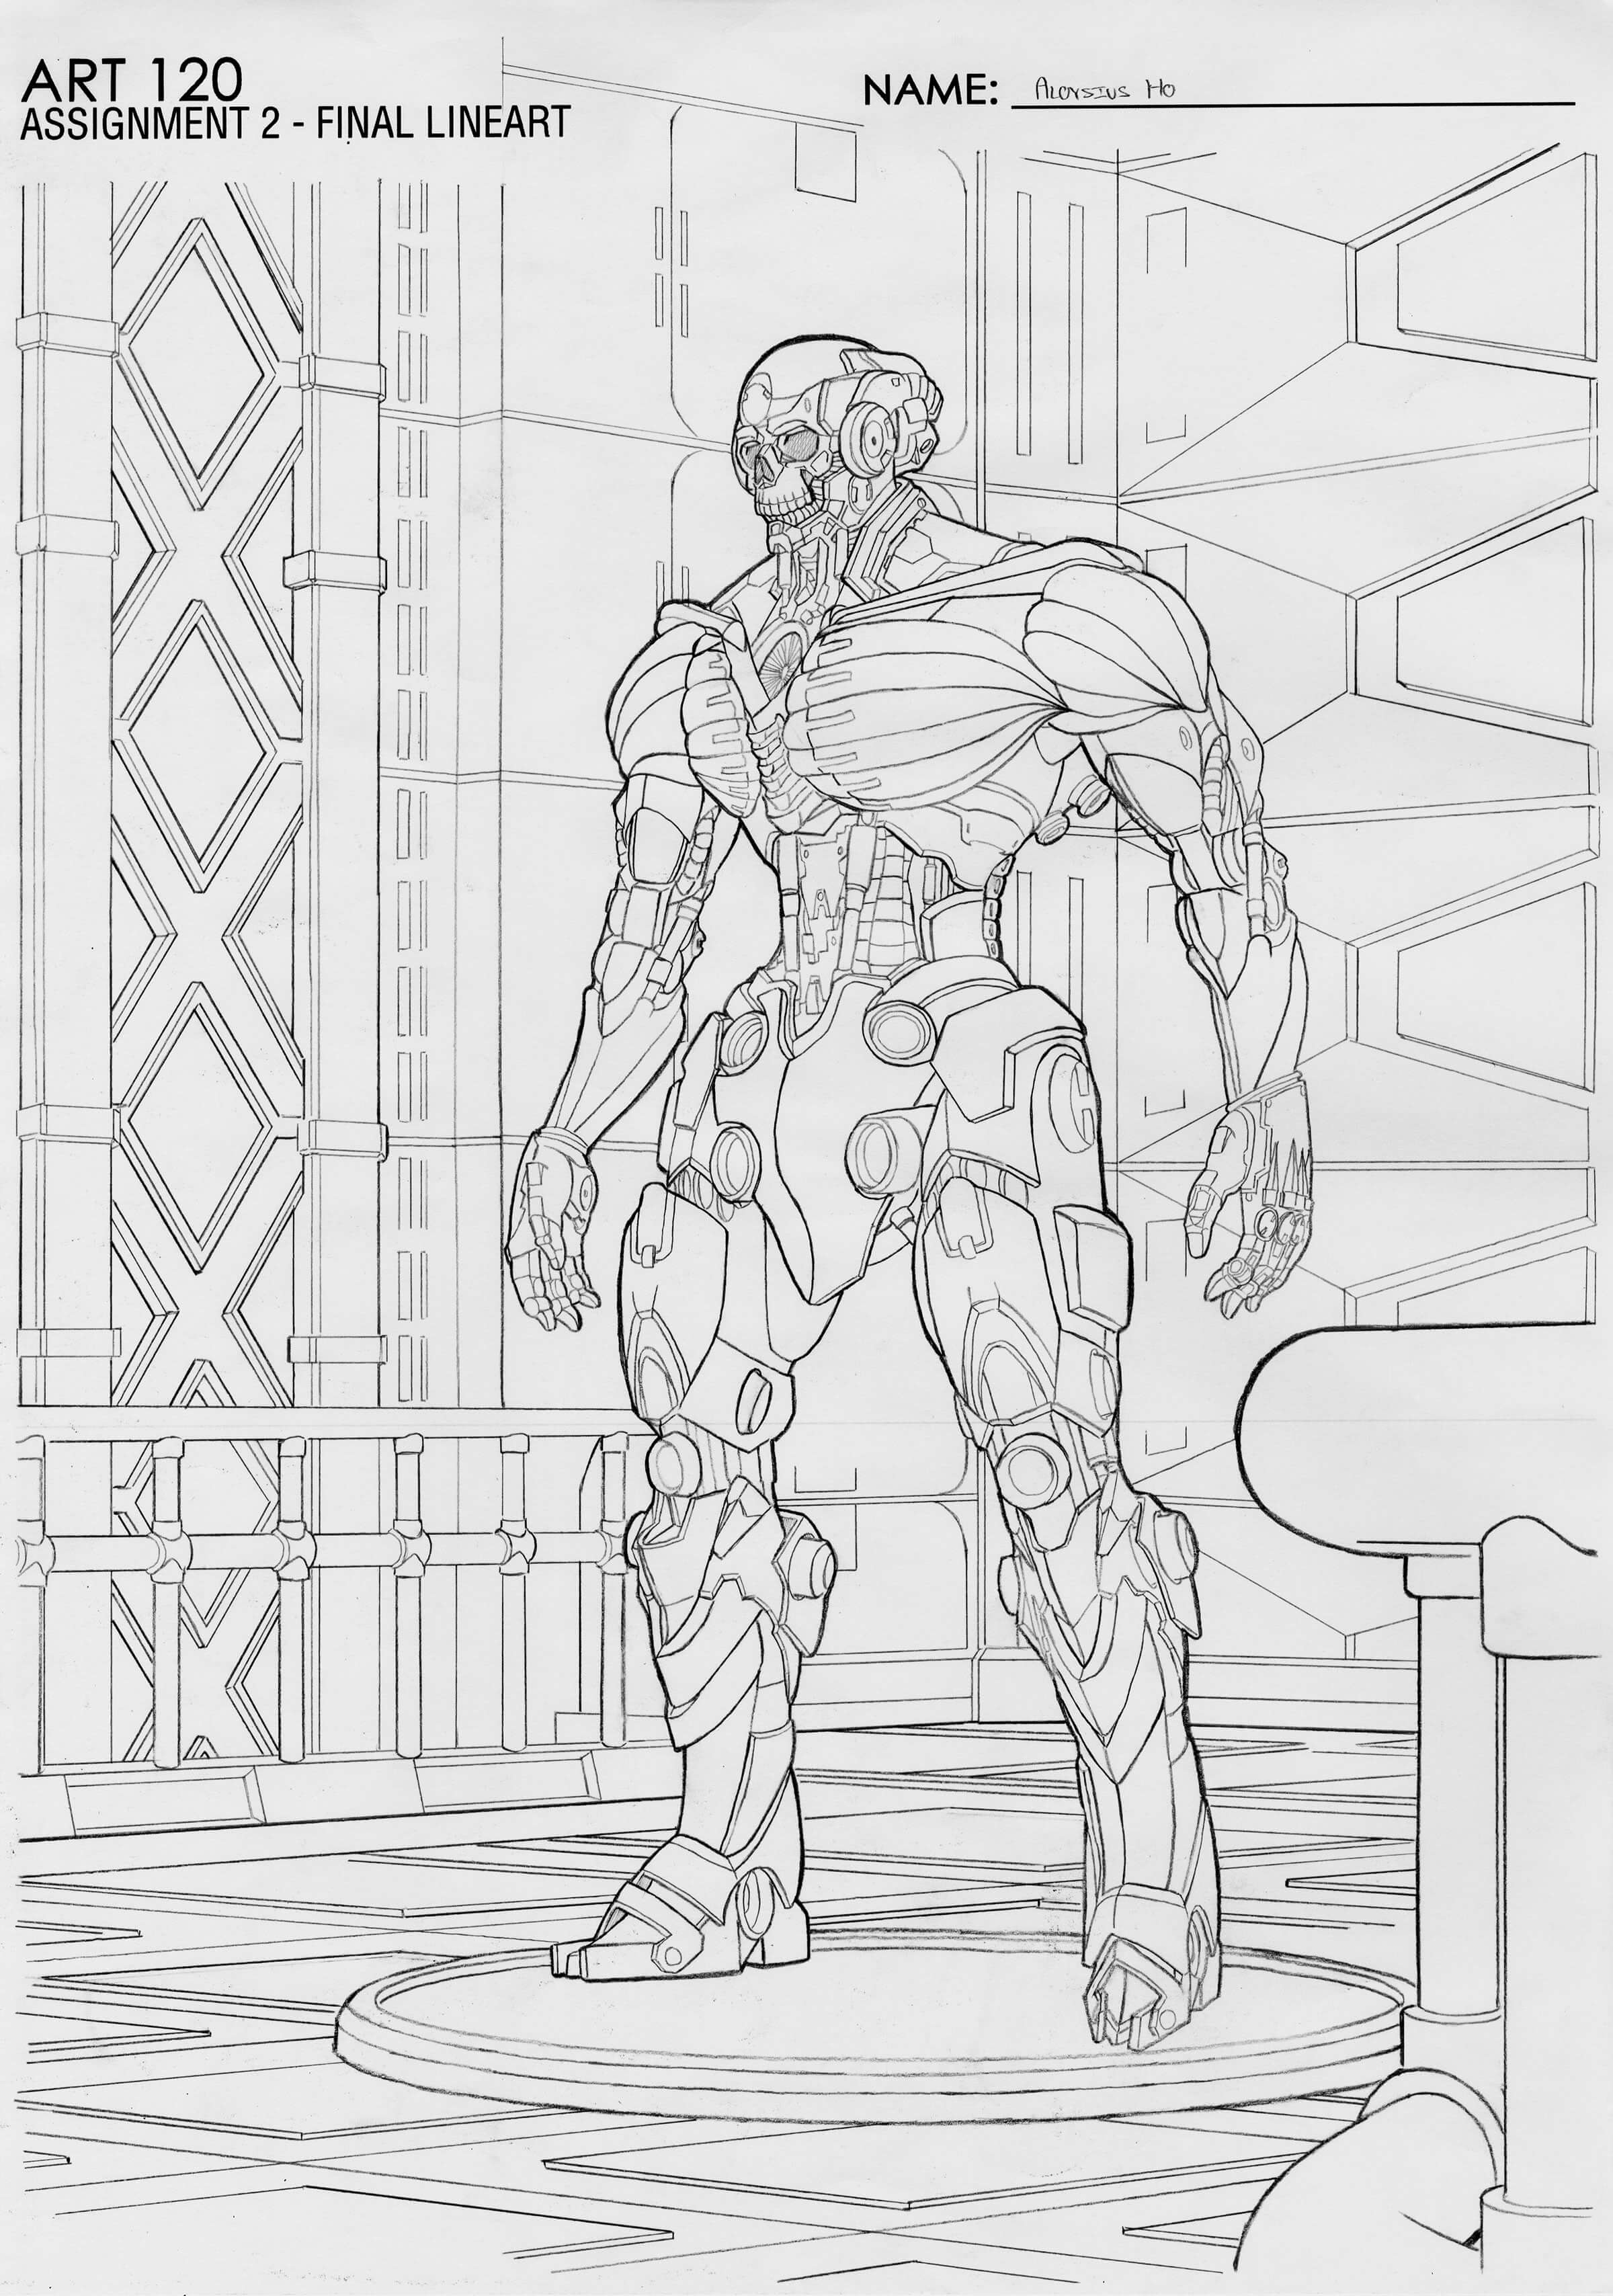 Black-and-white sketch of a standing robot with an exposed human-like skull.